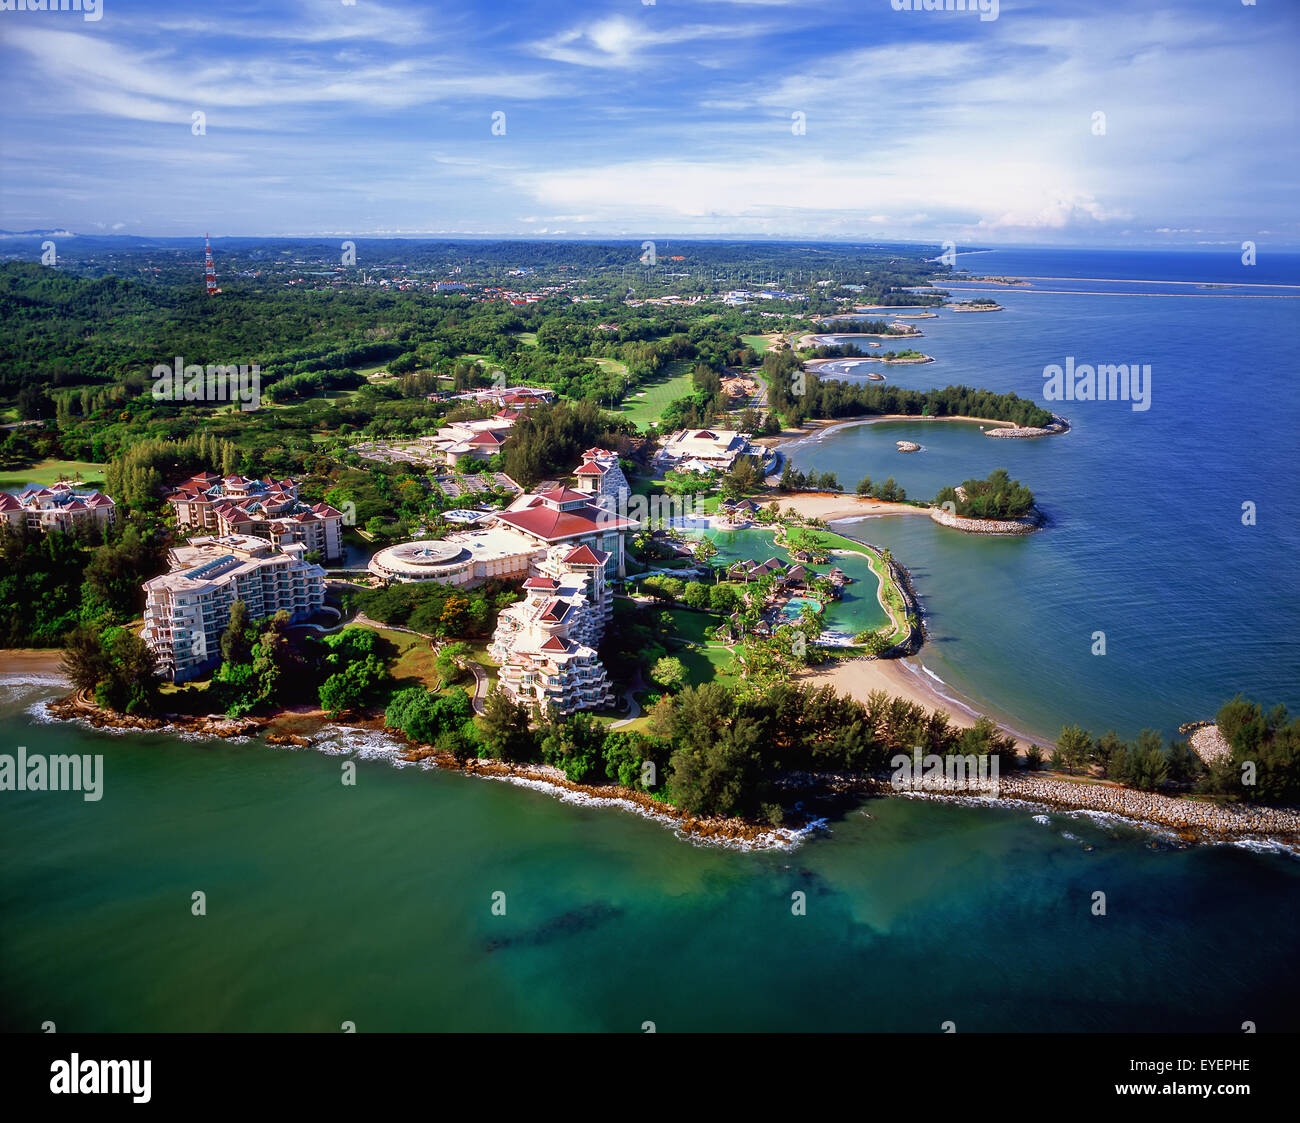 Aerial view of the Empire Hotel and Country Club; Bandar Seri Begawan, Brunei Stock Photo